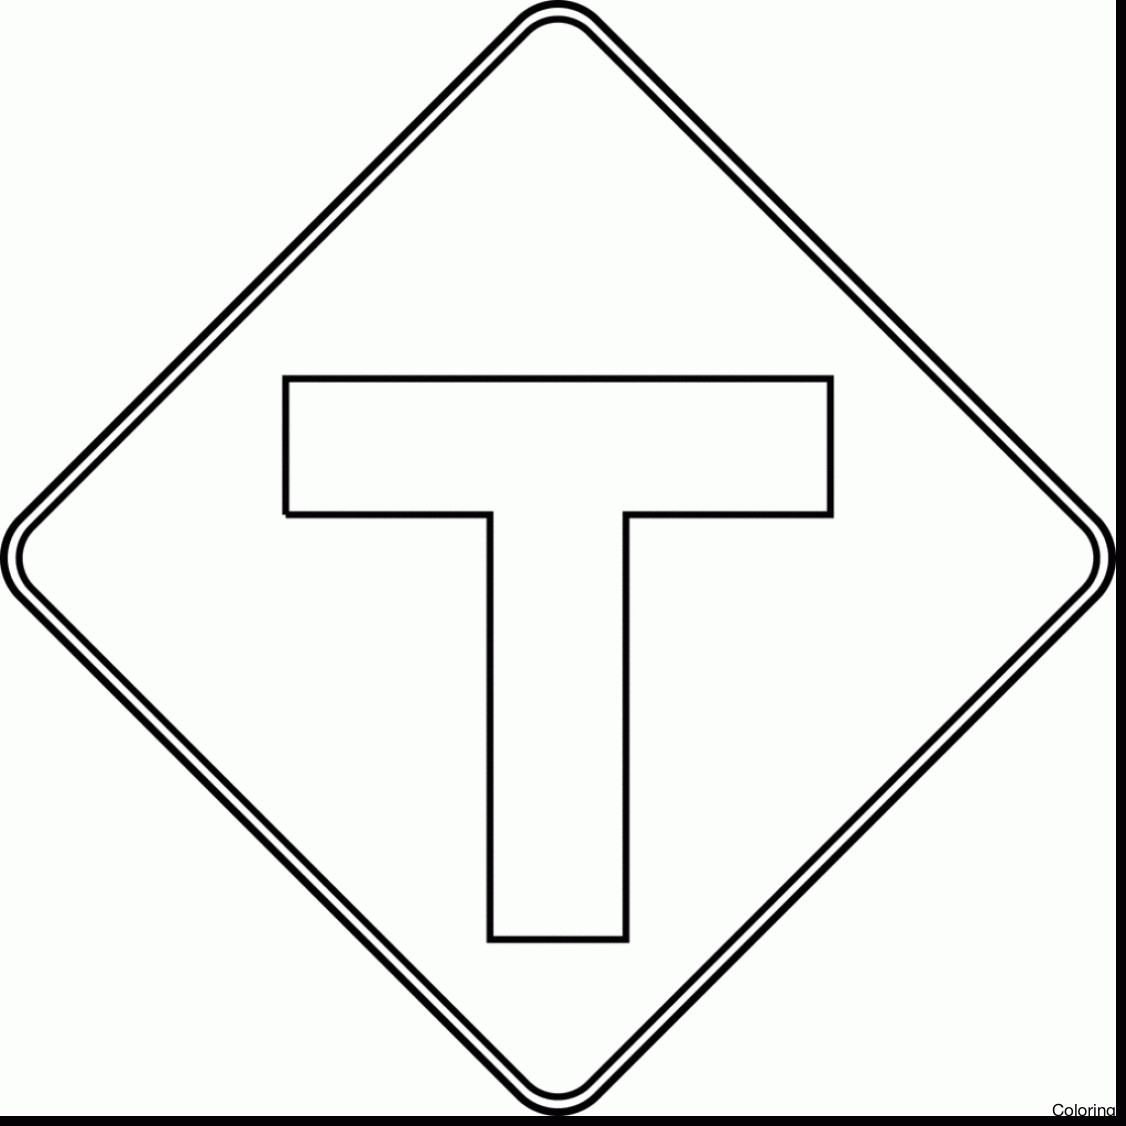 caution sign coloring page safety sign coloring page early childhood curriculums page sign caution coloring